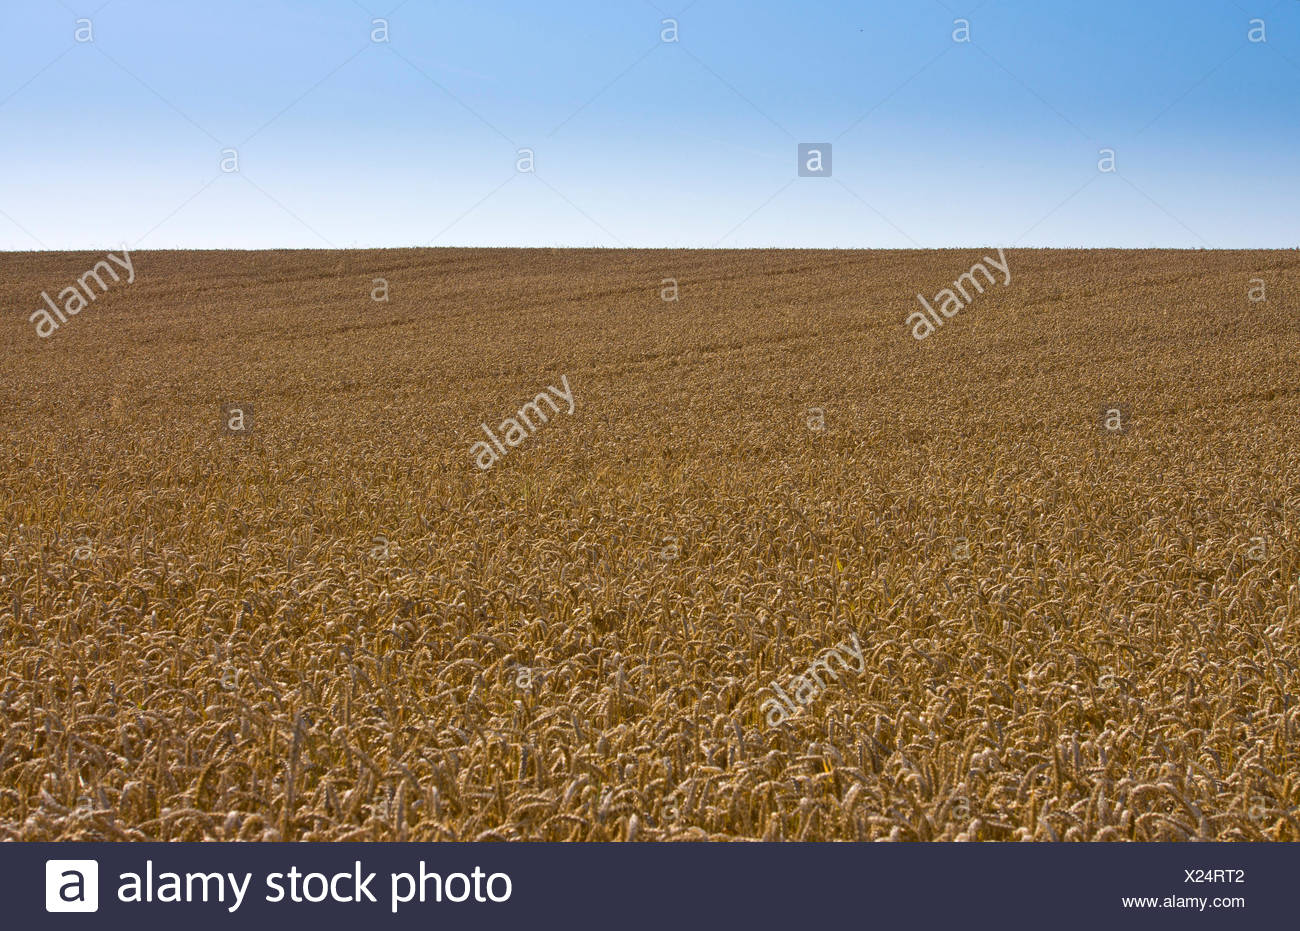 Wheat field, cornfield, Ostheim, Nidderau, Hesse, Germany - Stock Image